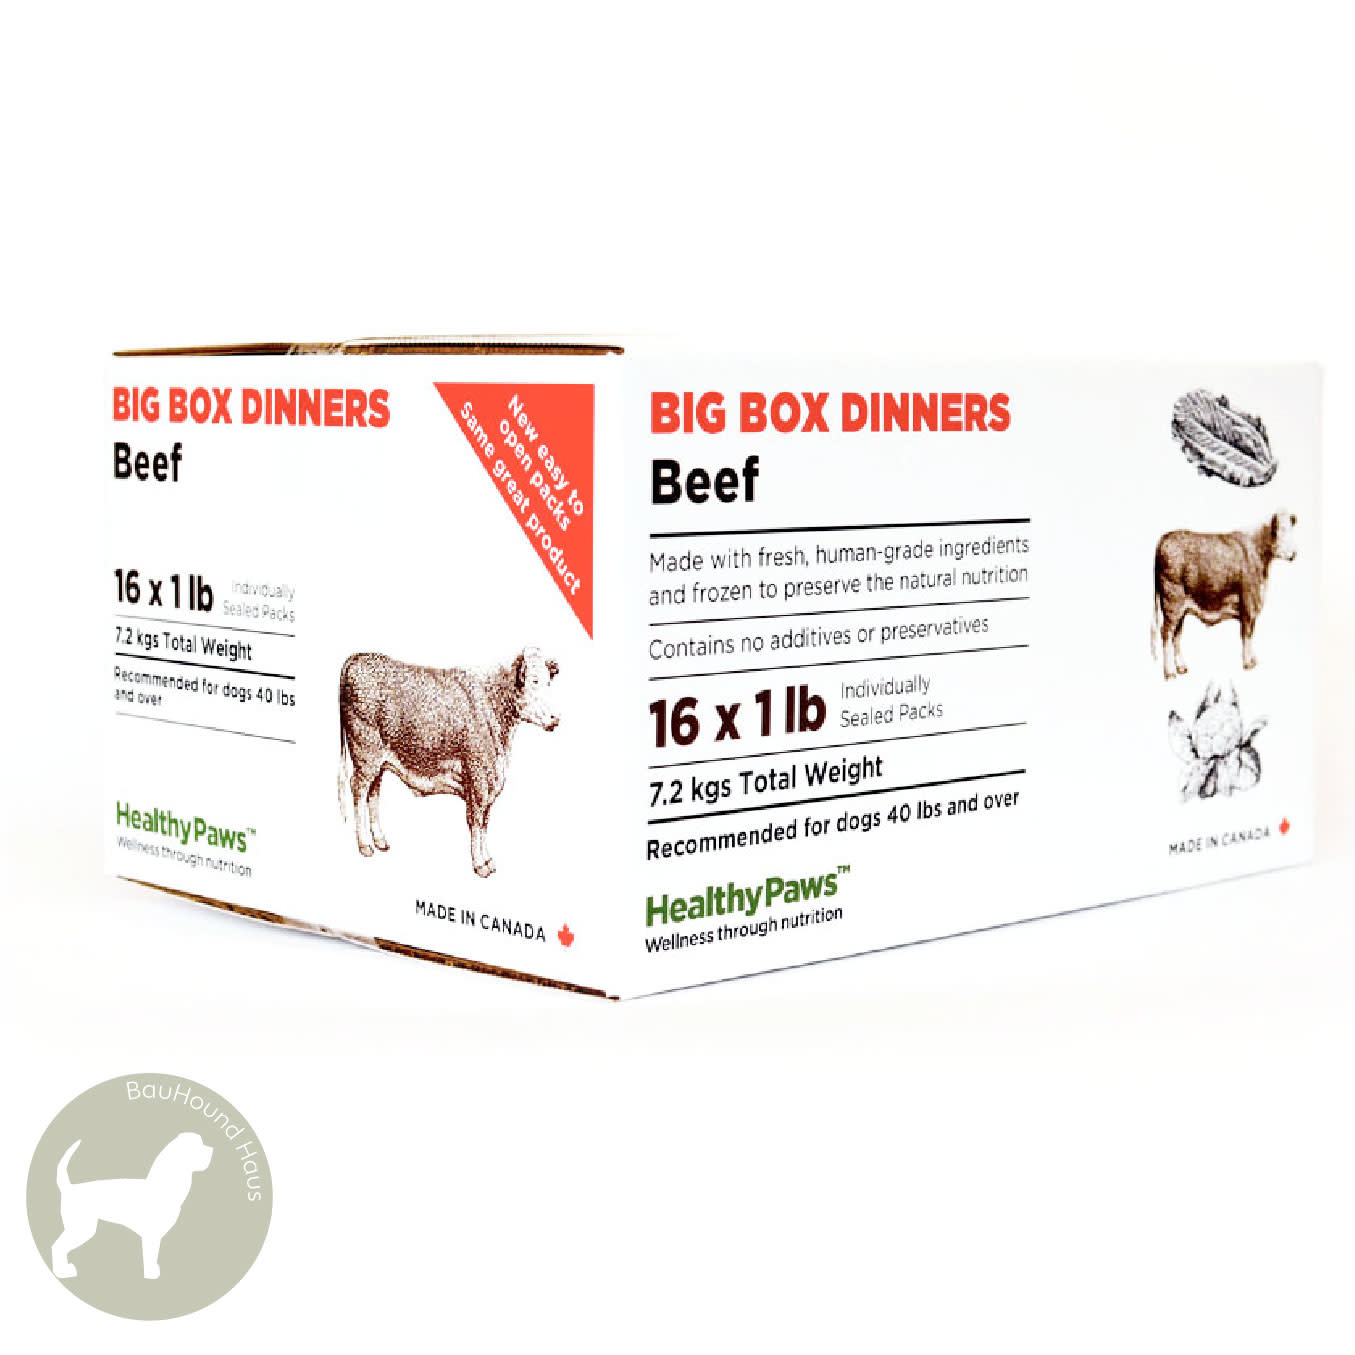 Healthy Paws Healthy Paws Big Box Dinner Beef, 16lb